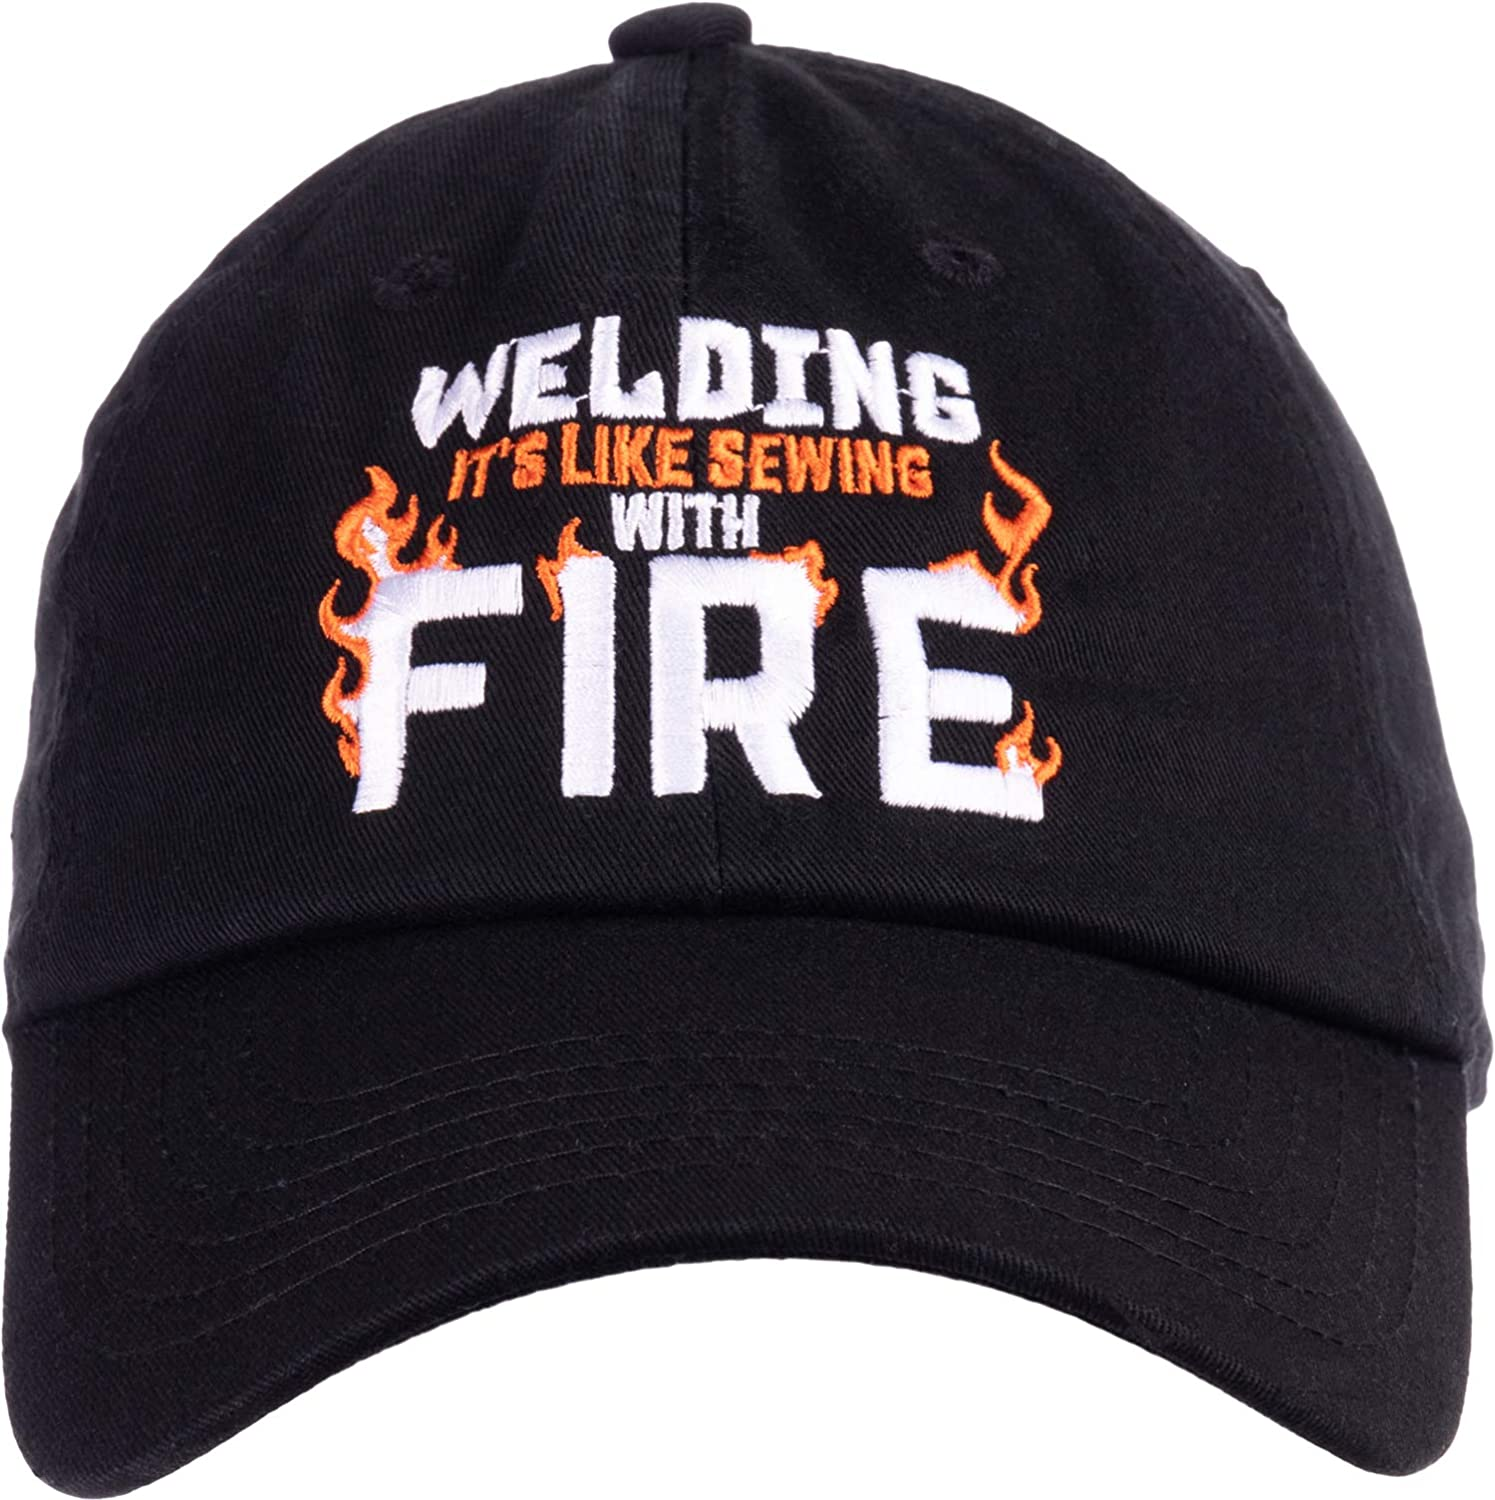 Ann Arbor T-shirt Co. wholesale Welding: It's Funn Sale Fire Like Sewing with